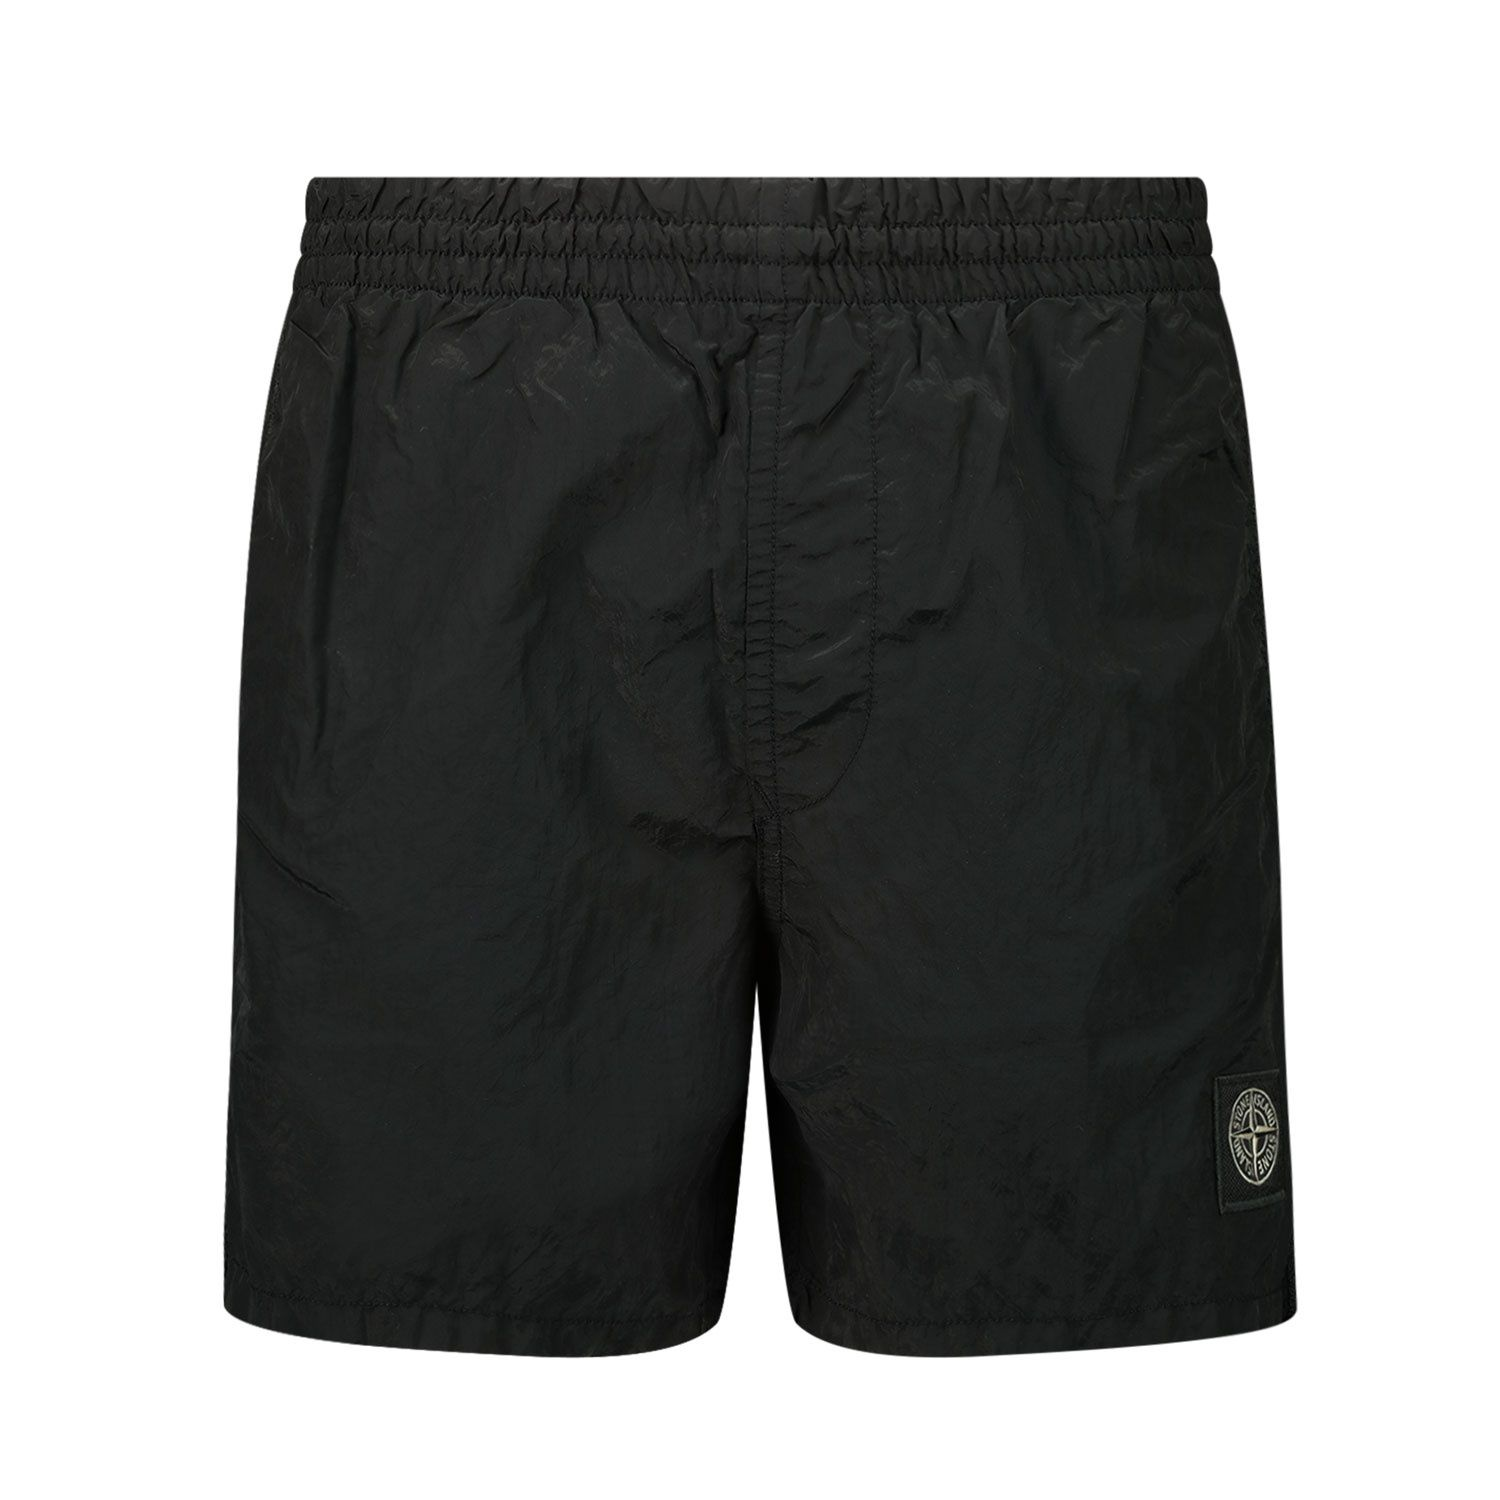 Picture of Stone Island B0213 kids swimwear black